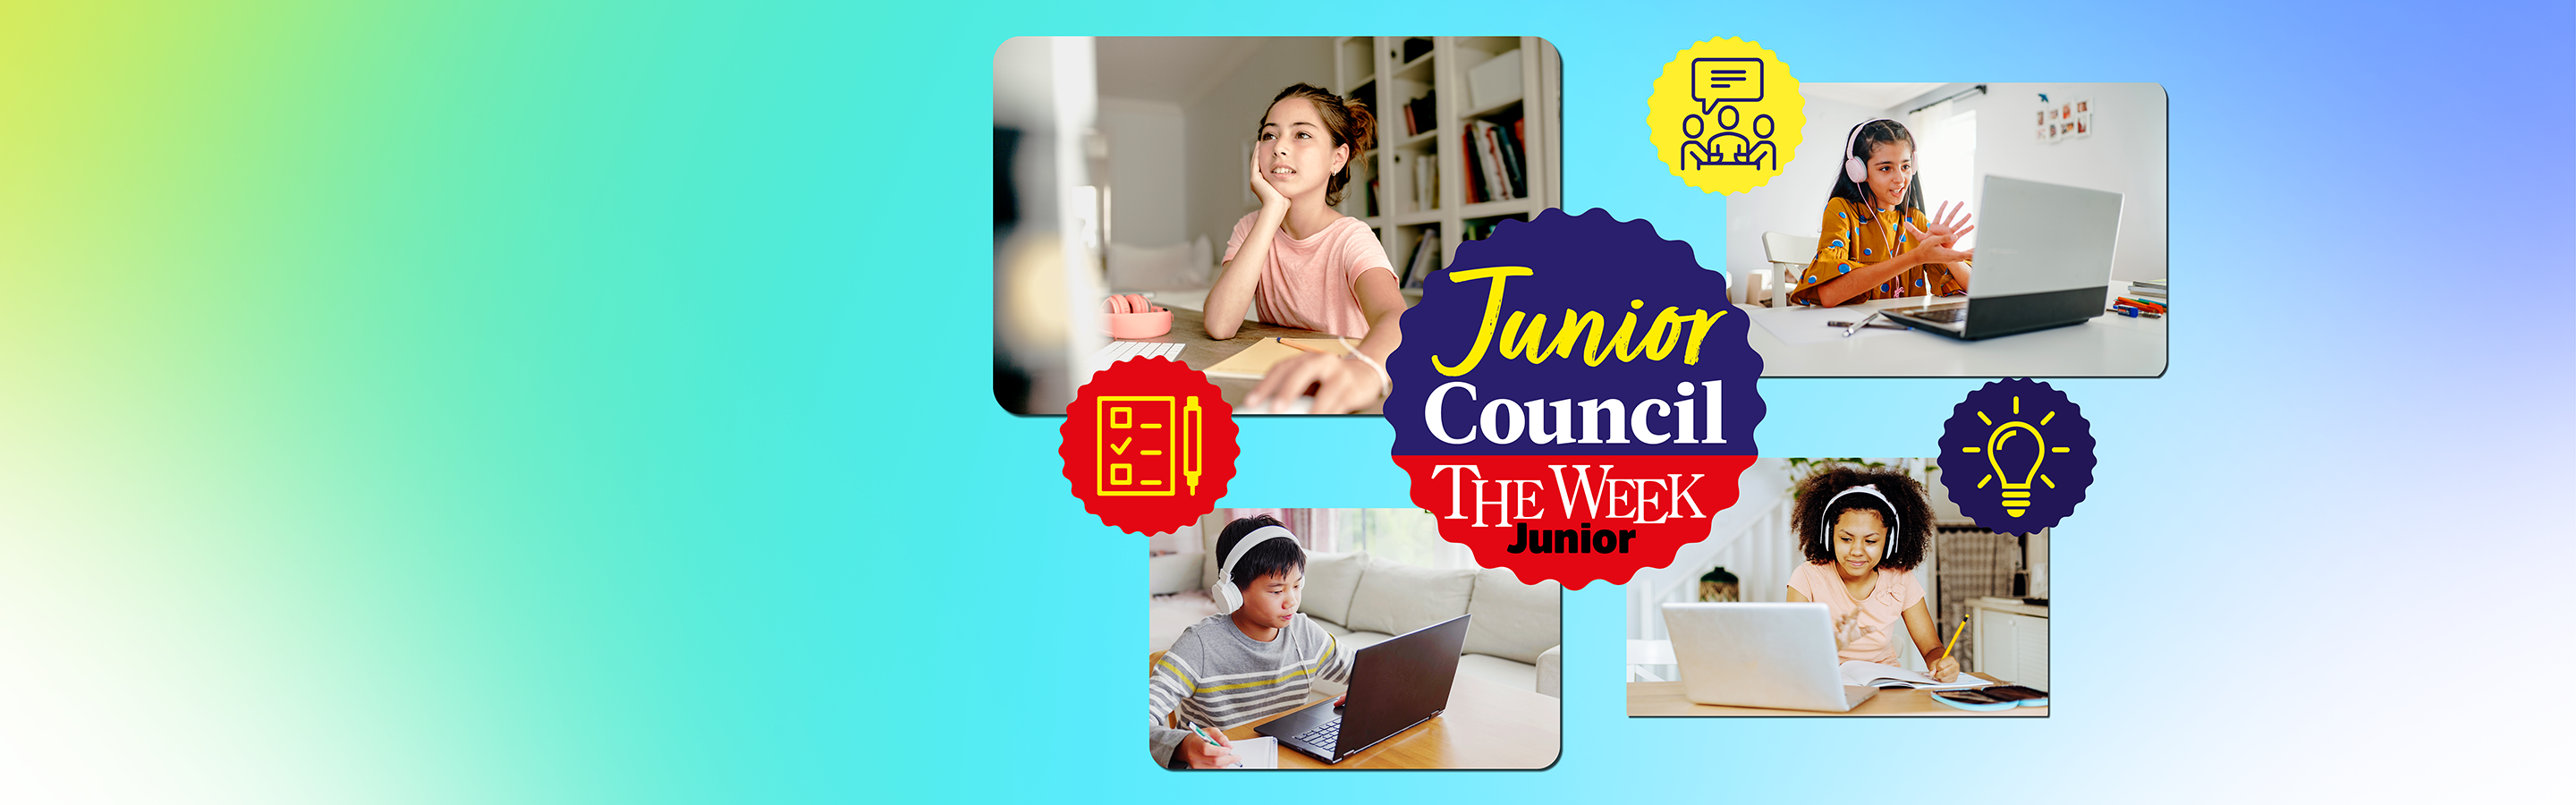 A compilation of images on a green to purple gradient background. 4 images of girls and boys aged 12 using computers. 2 icons, a yellow lightbulb on blue circle and a yellow notepad and pen on a red background. In the center is the logo for Junior Council.